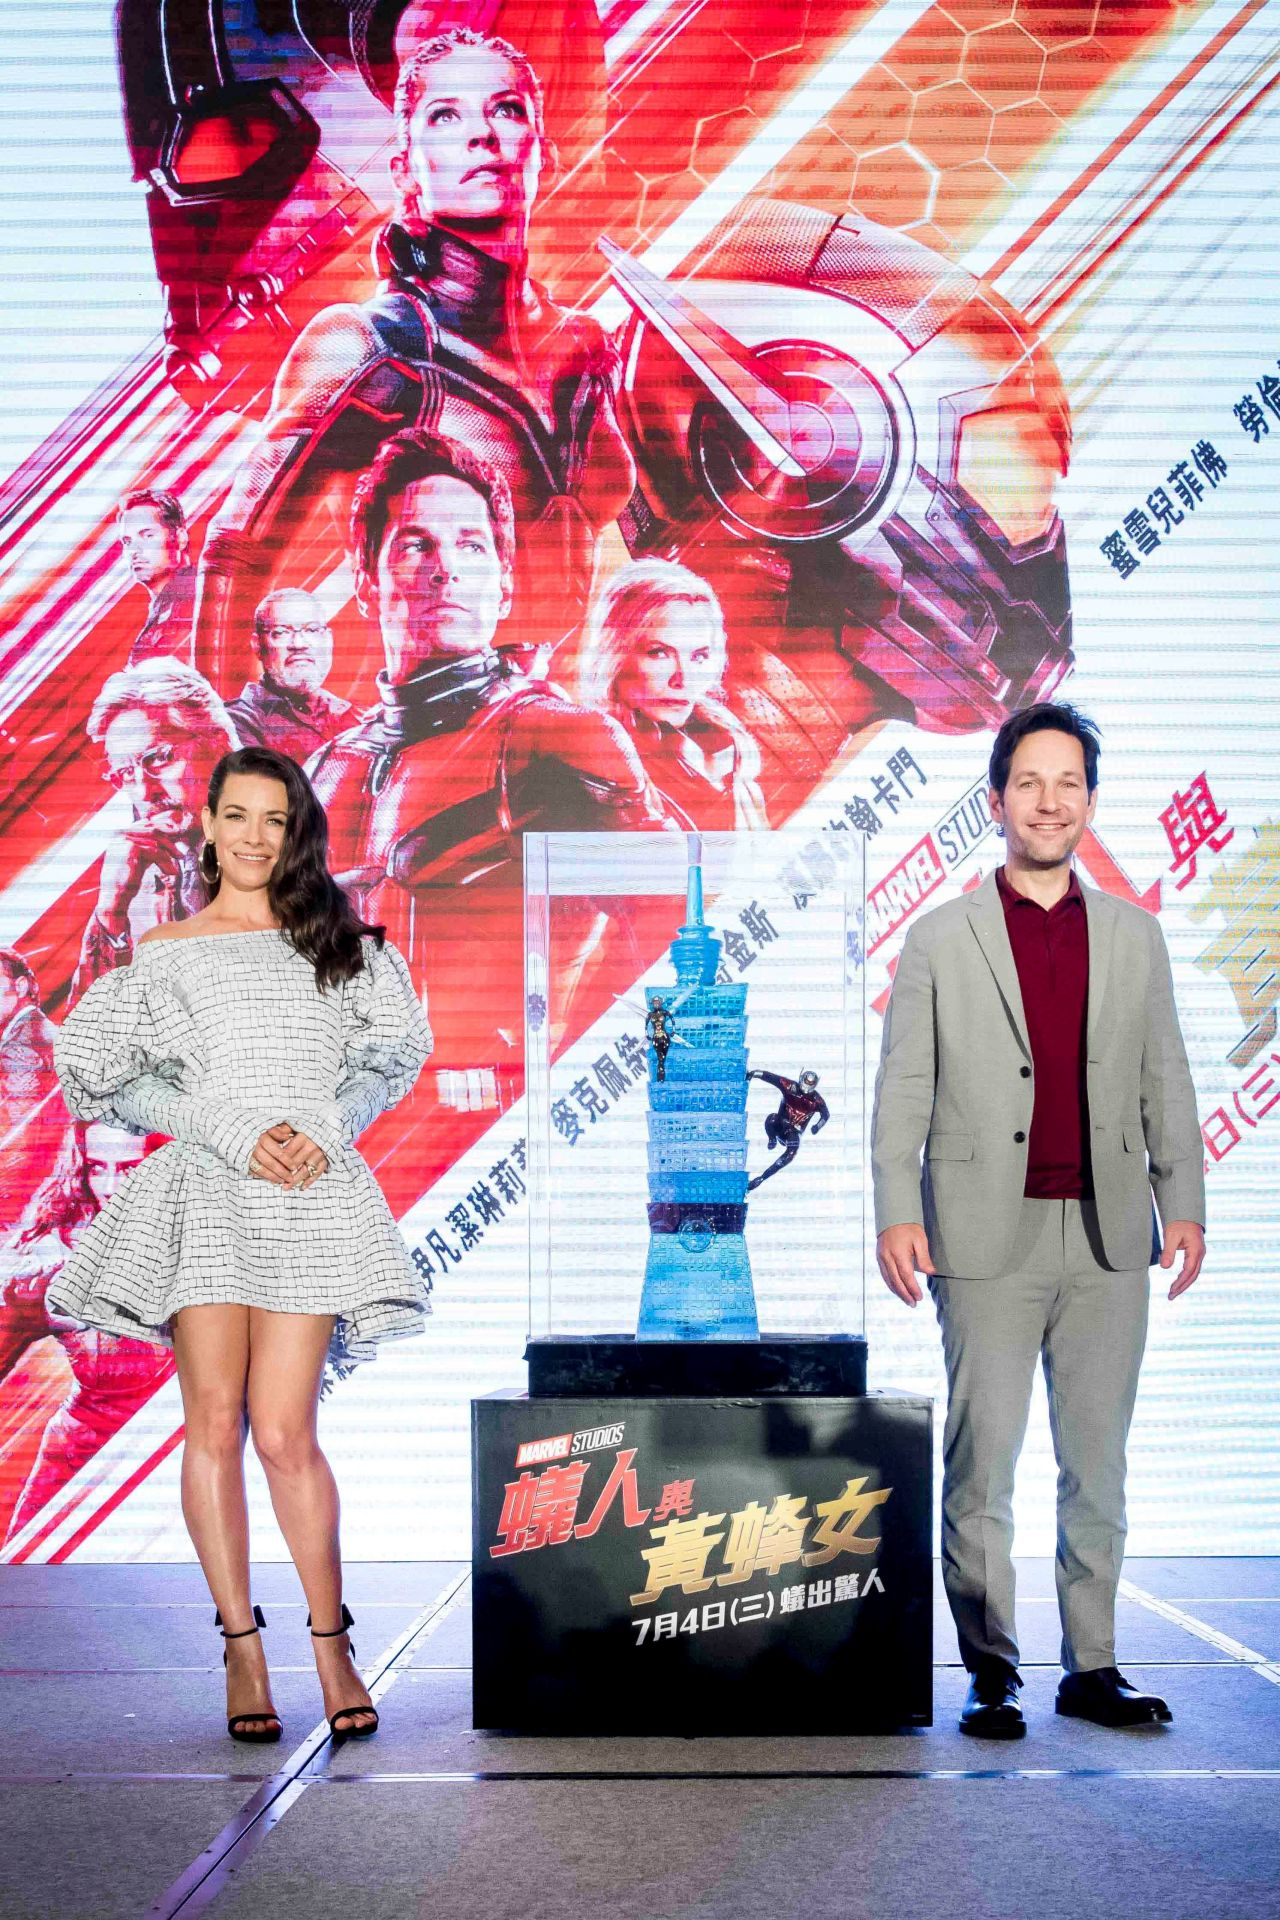 https://celebmafia.com/wp-content/uploads/2018/06/evangeline-lilly-ant-man-and-the-wasp-press-conference-in-taipei-0.jpg